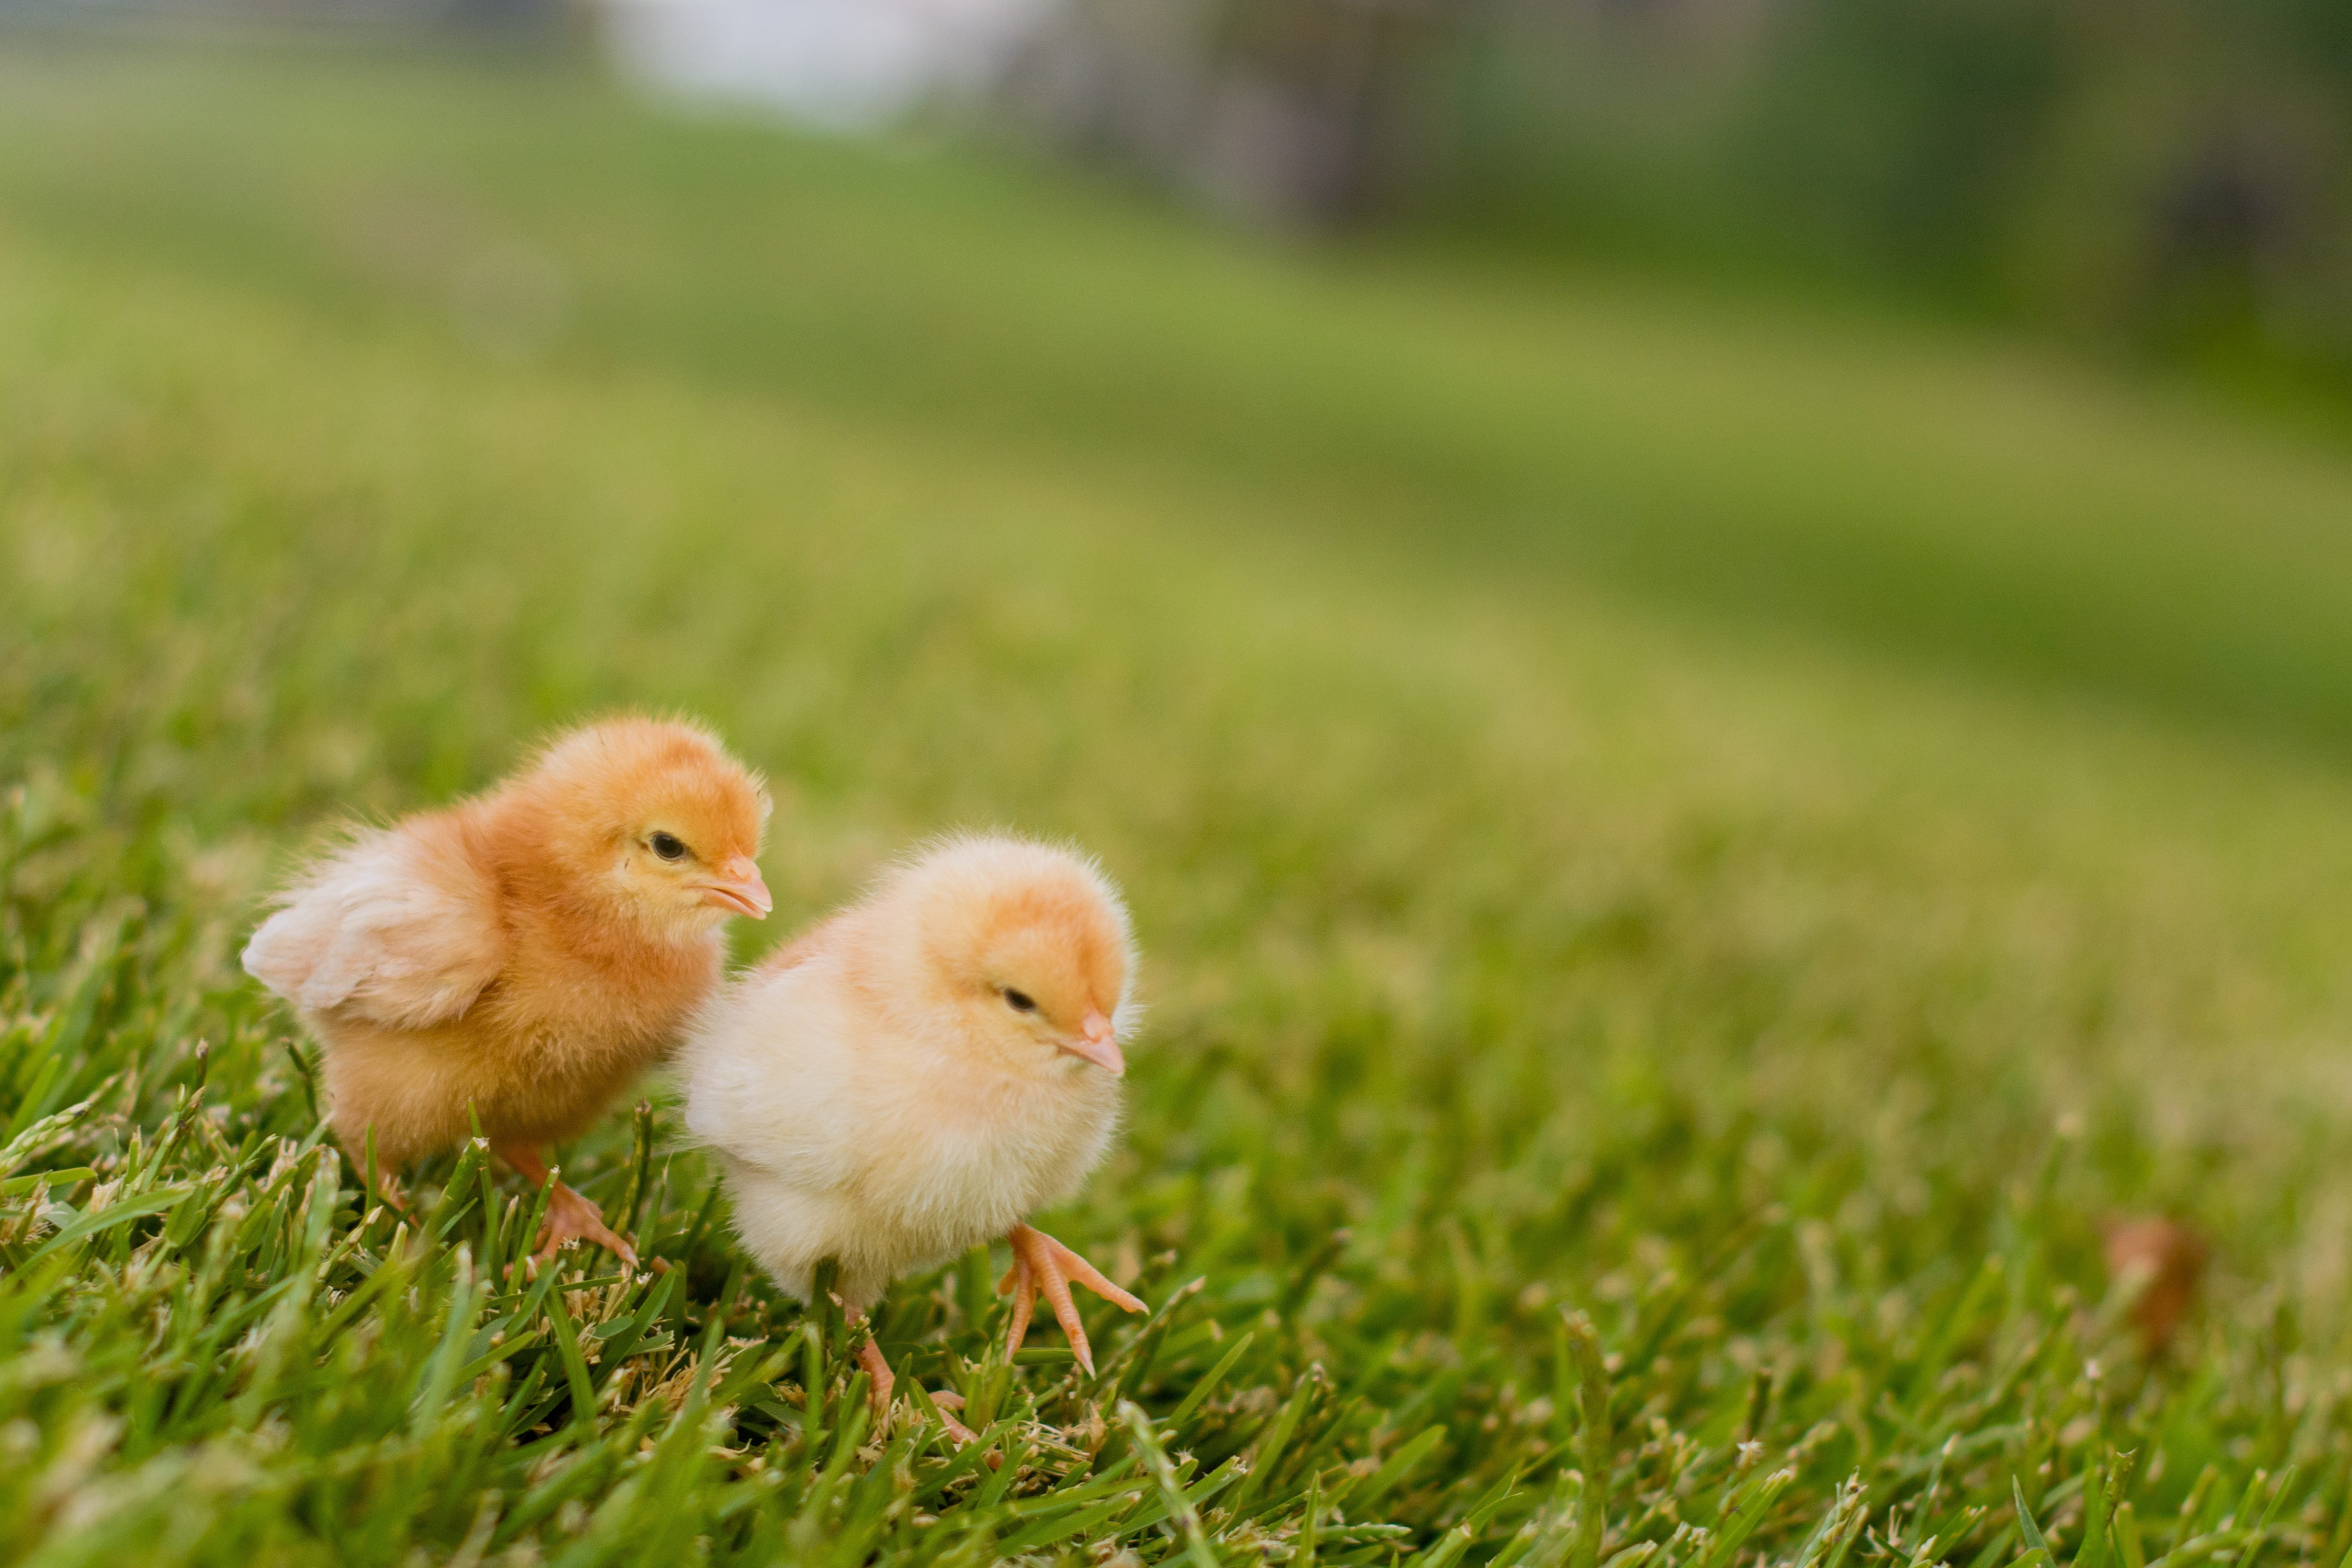 Two chicks sitting on grass